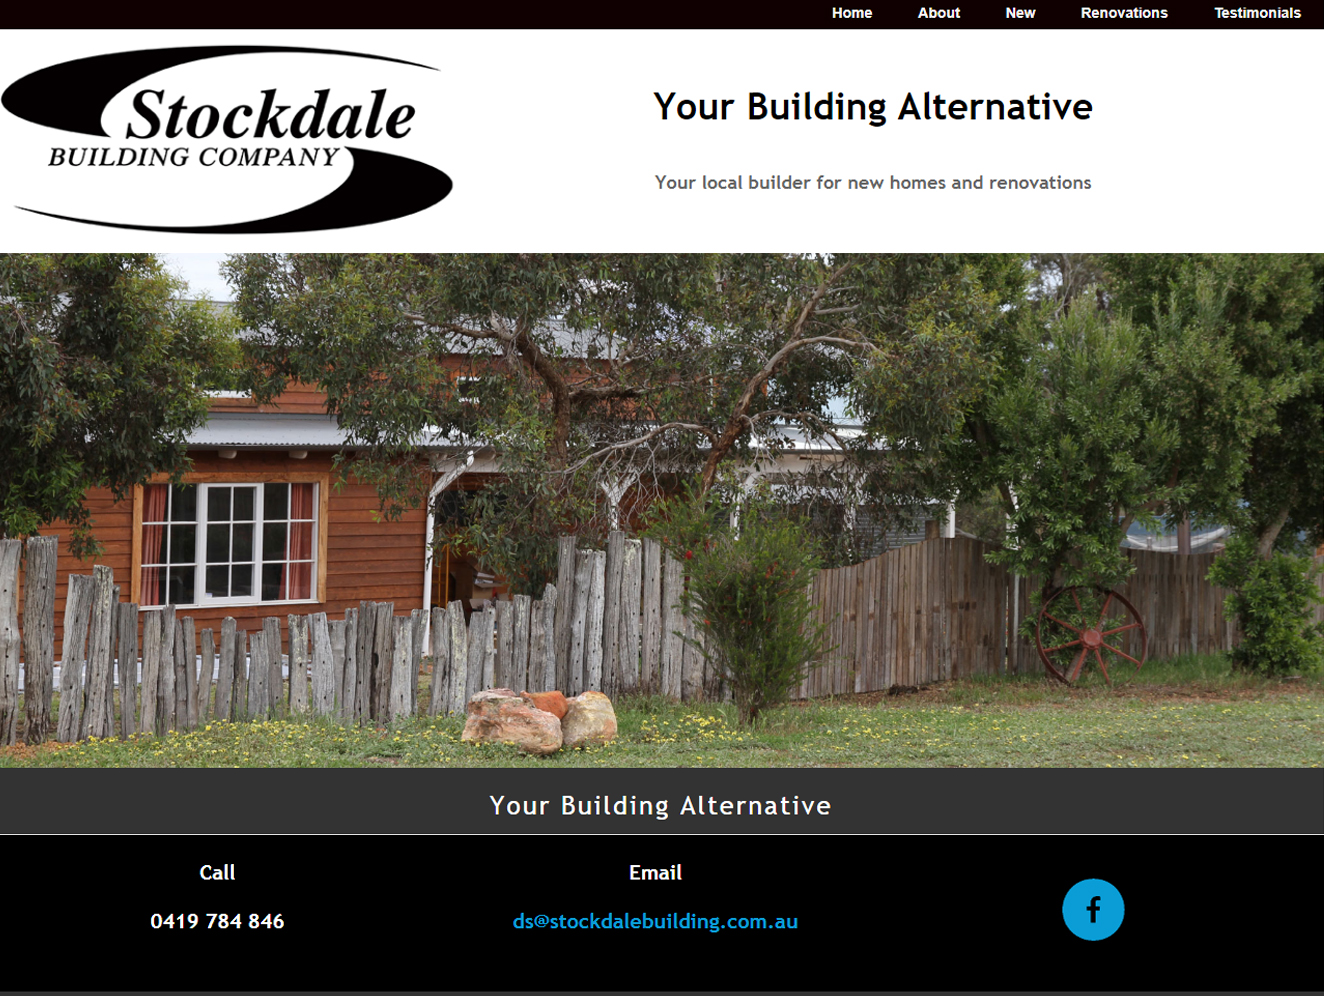 Stockdale Building Company